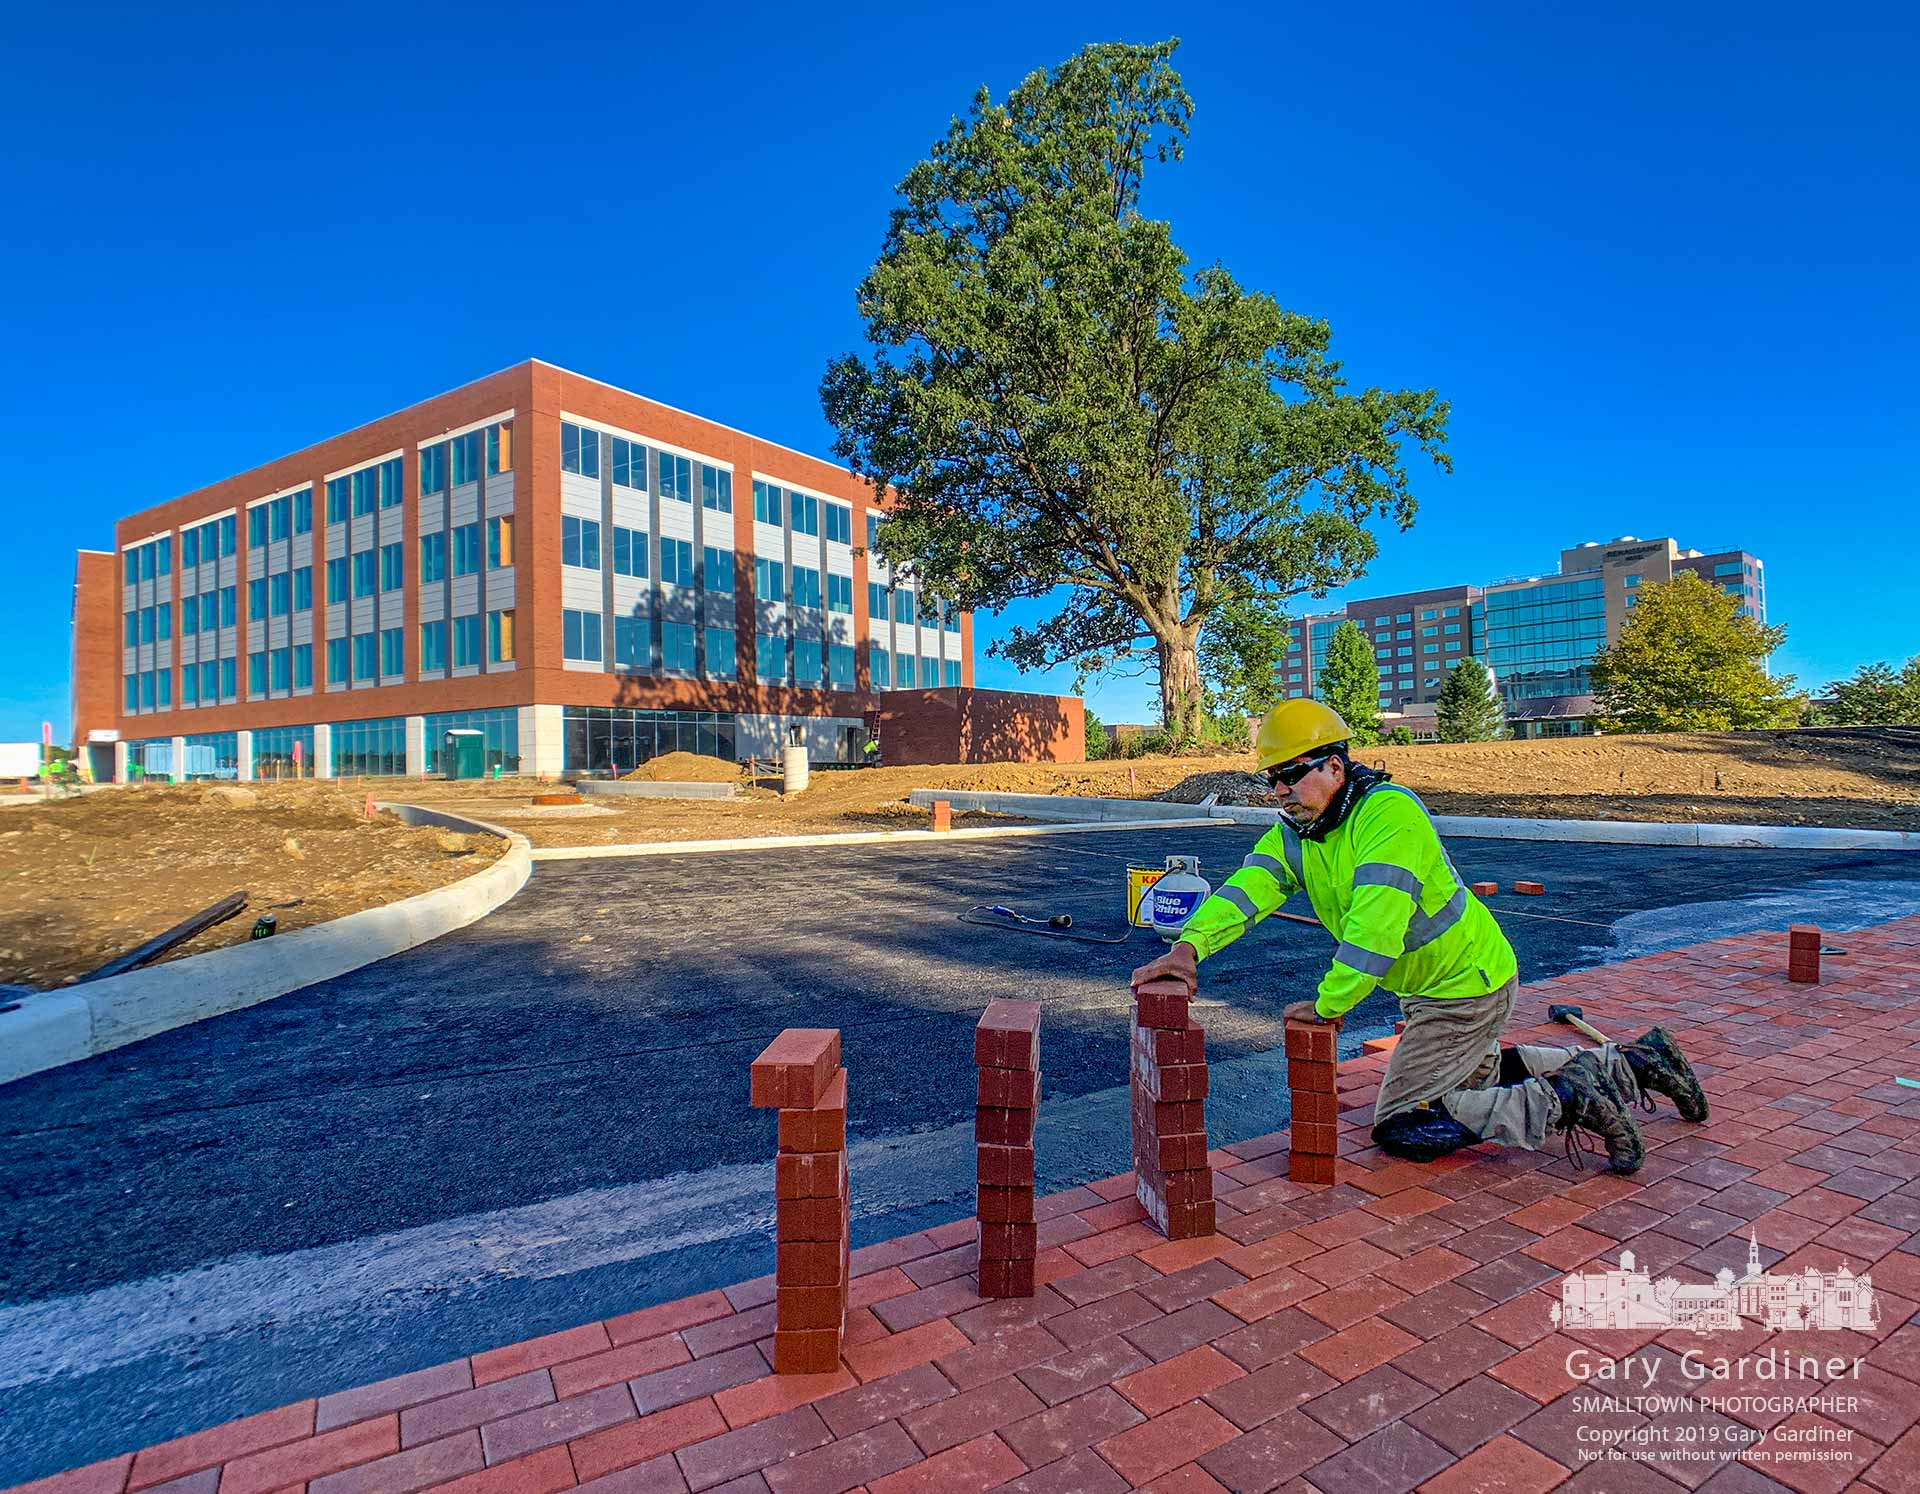 A bricklayer places pavers at an entrance to what will be the parking lot for the new DHL Logistics North and South America headquarter building. My Final Photo for Aug. 29, 2019.